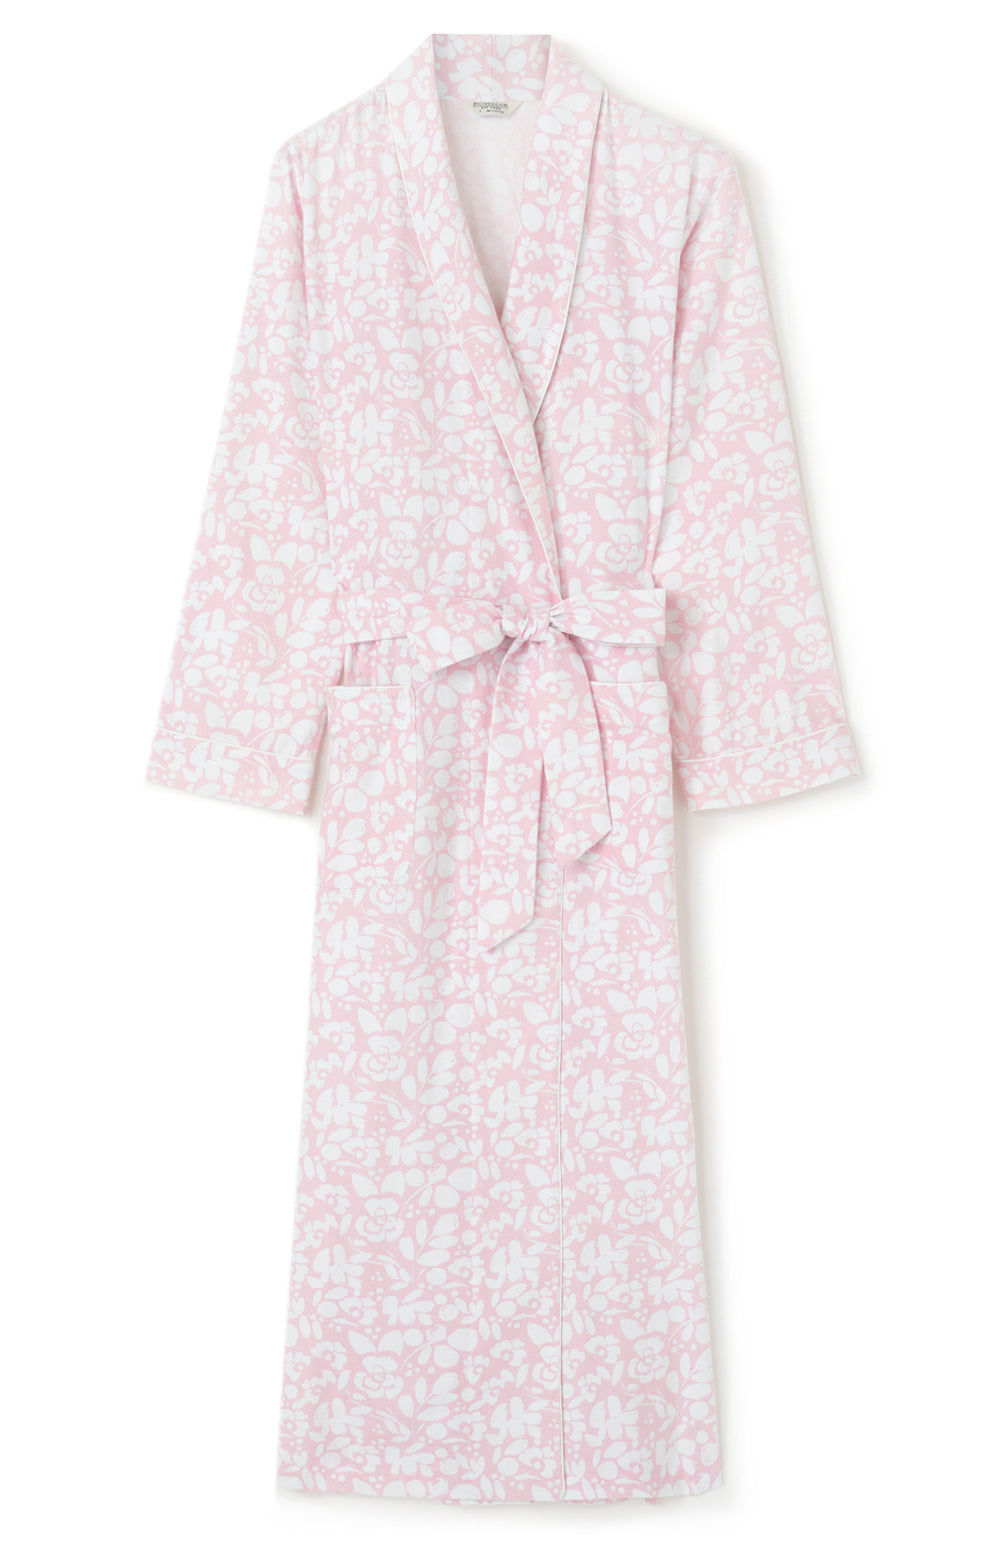 Brushed Cotton Pink Floral Gown | Bonsoir of London